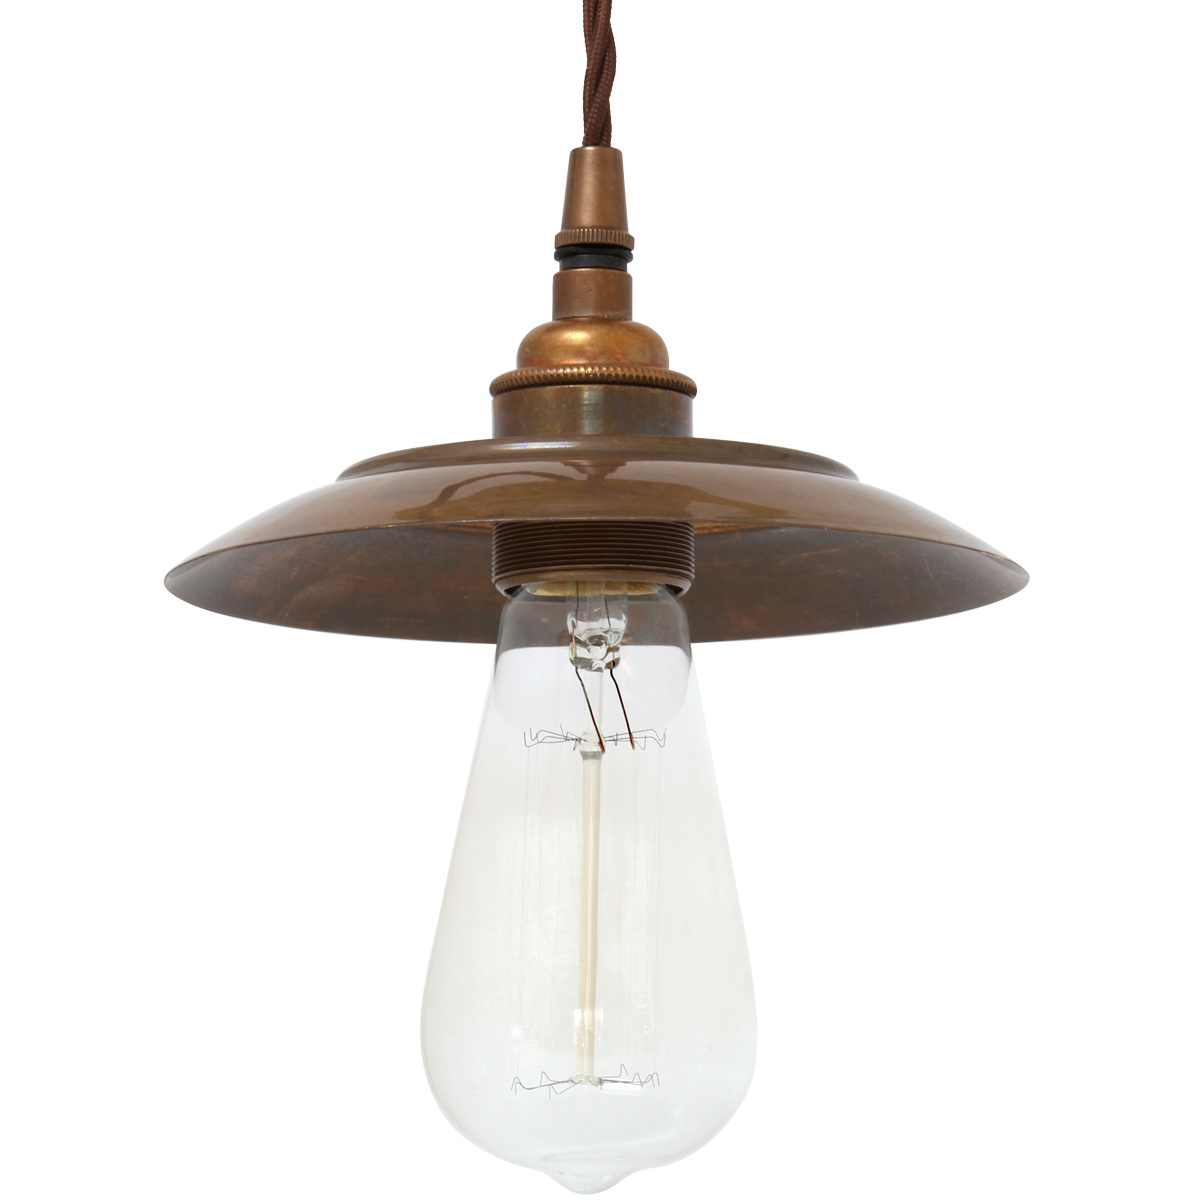 Image 1 simply charming simple light fixture with small shade shown here in antique brass patinated with edison bulb